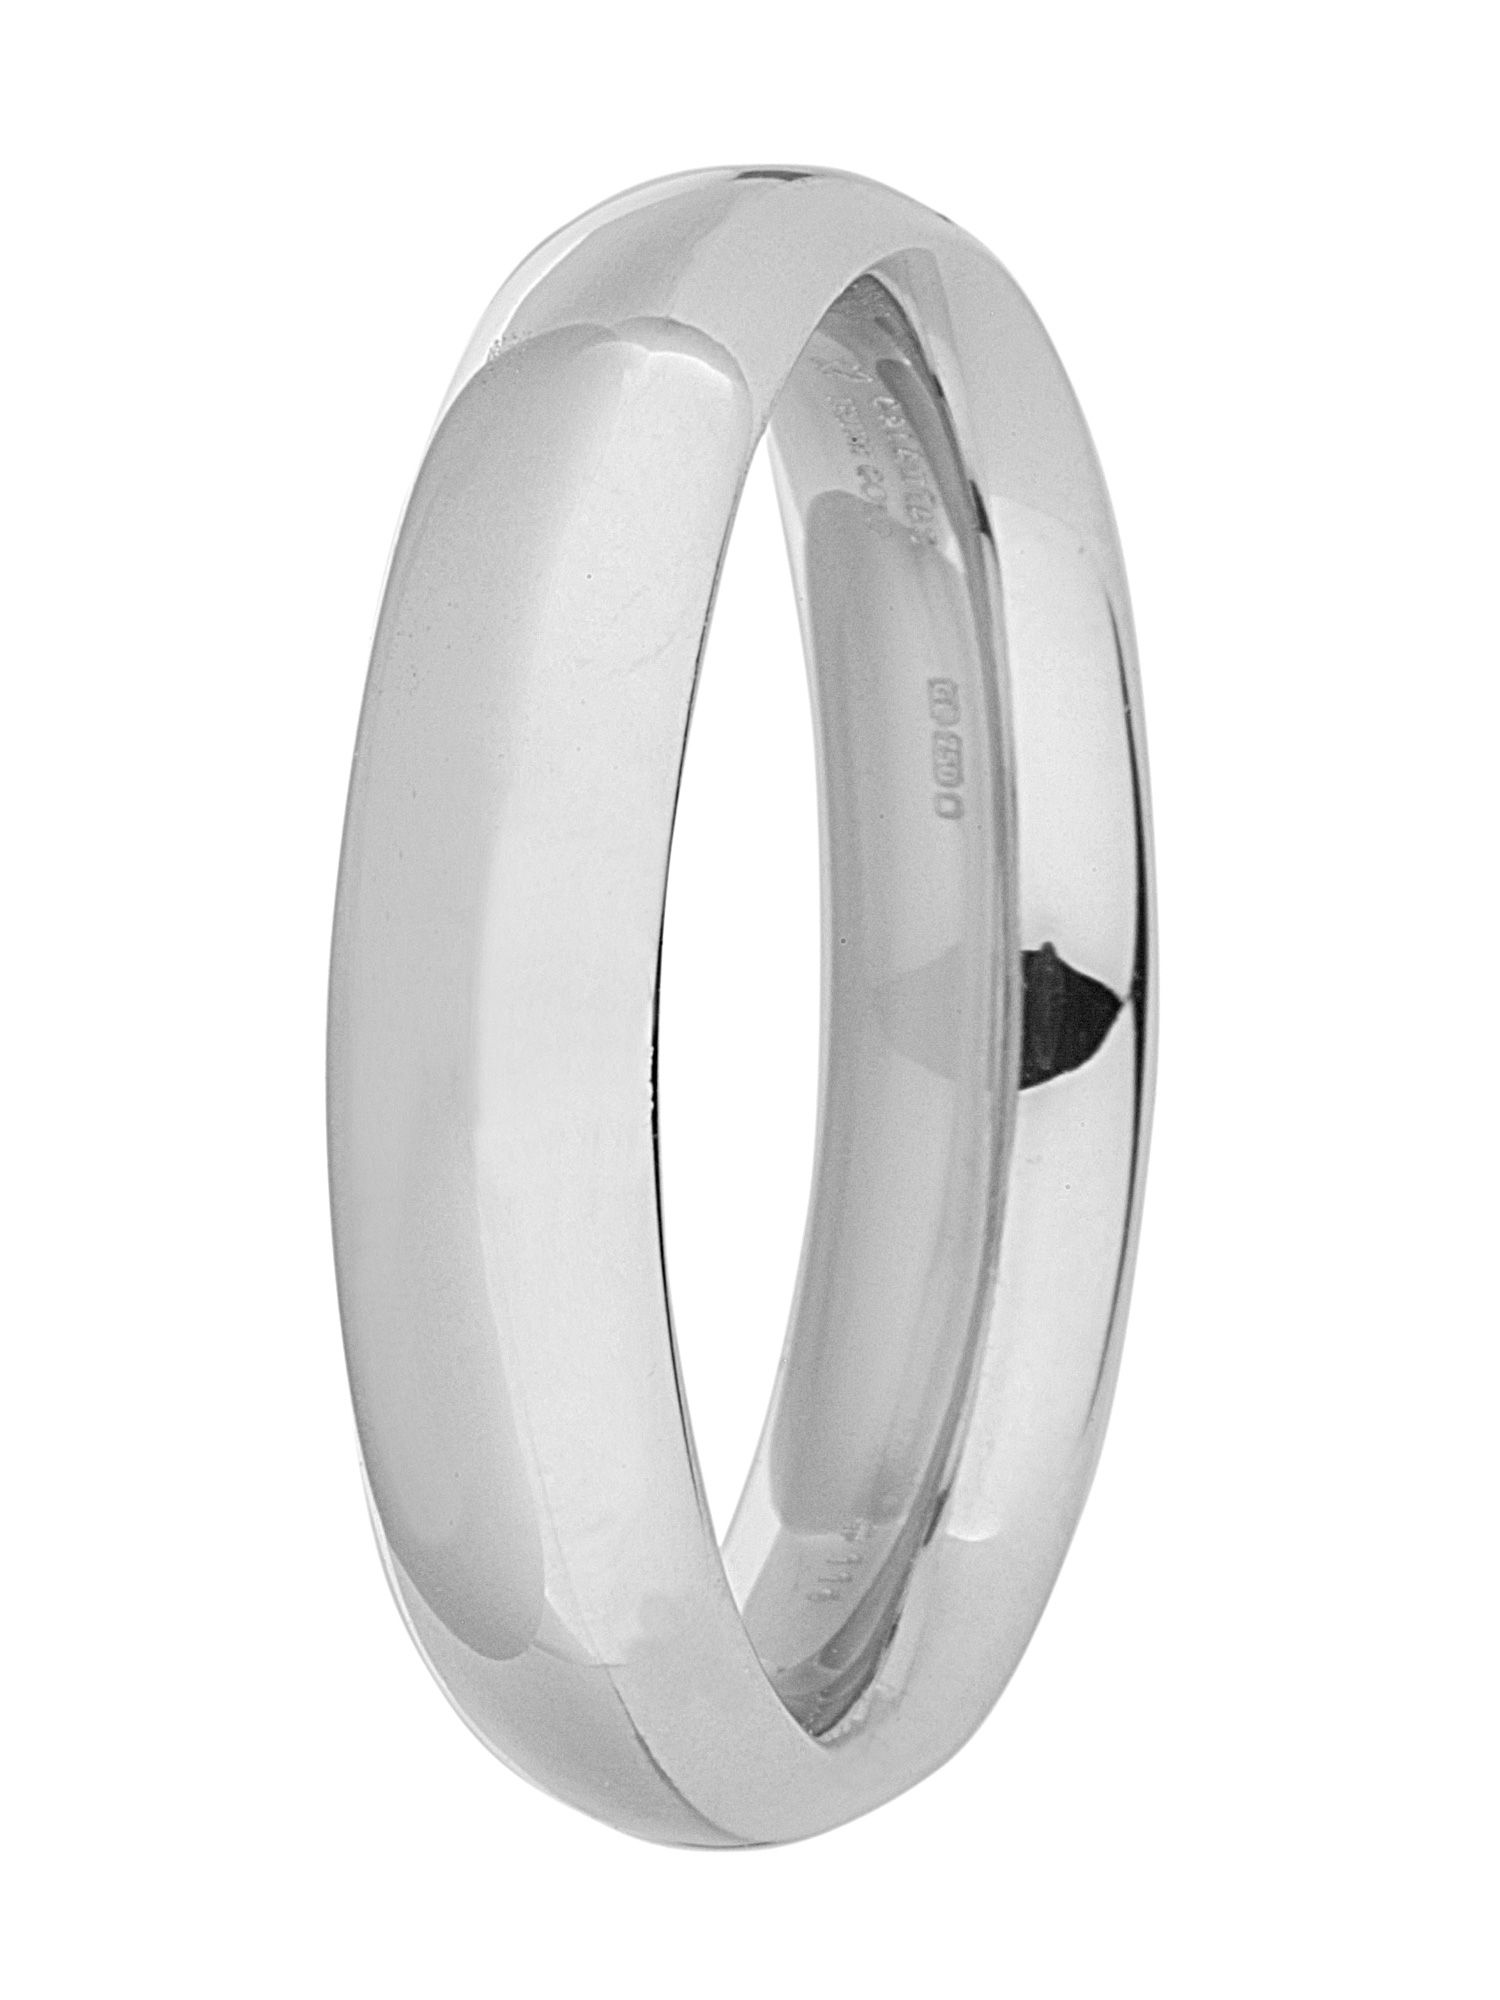 Brides 9ct gold 5mm court wedding ring - White Gold